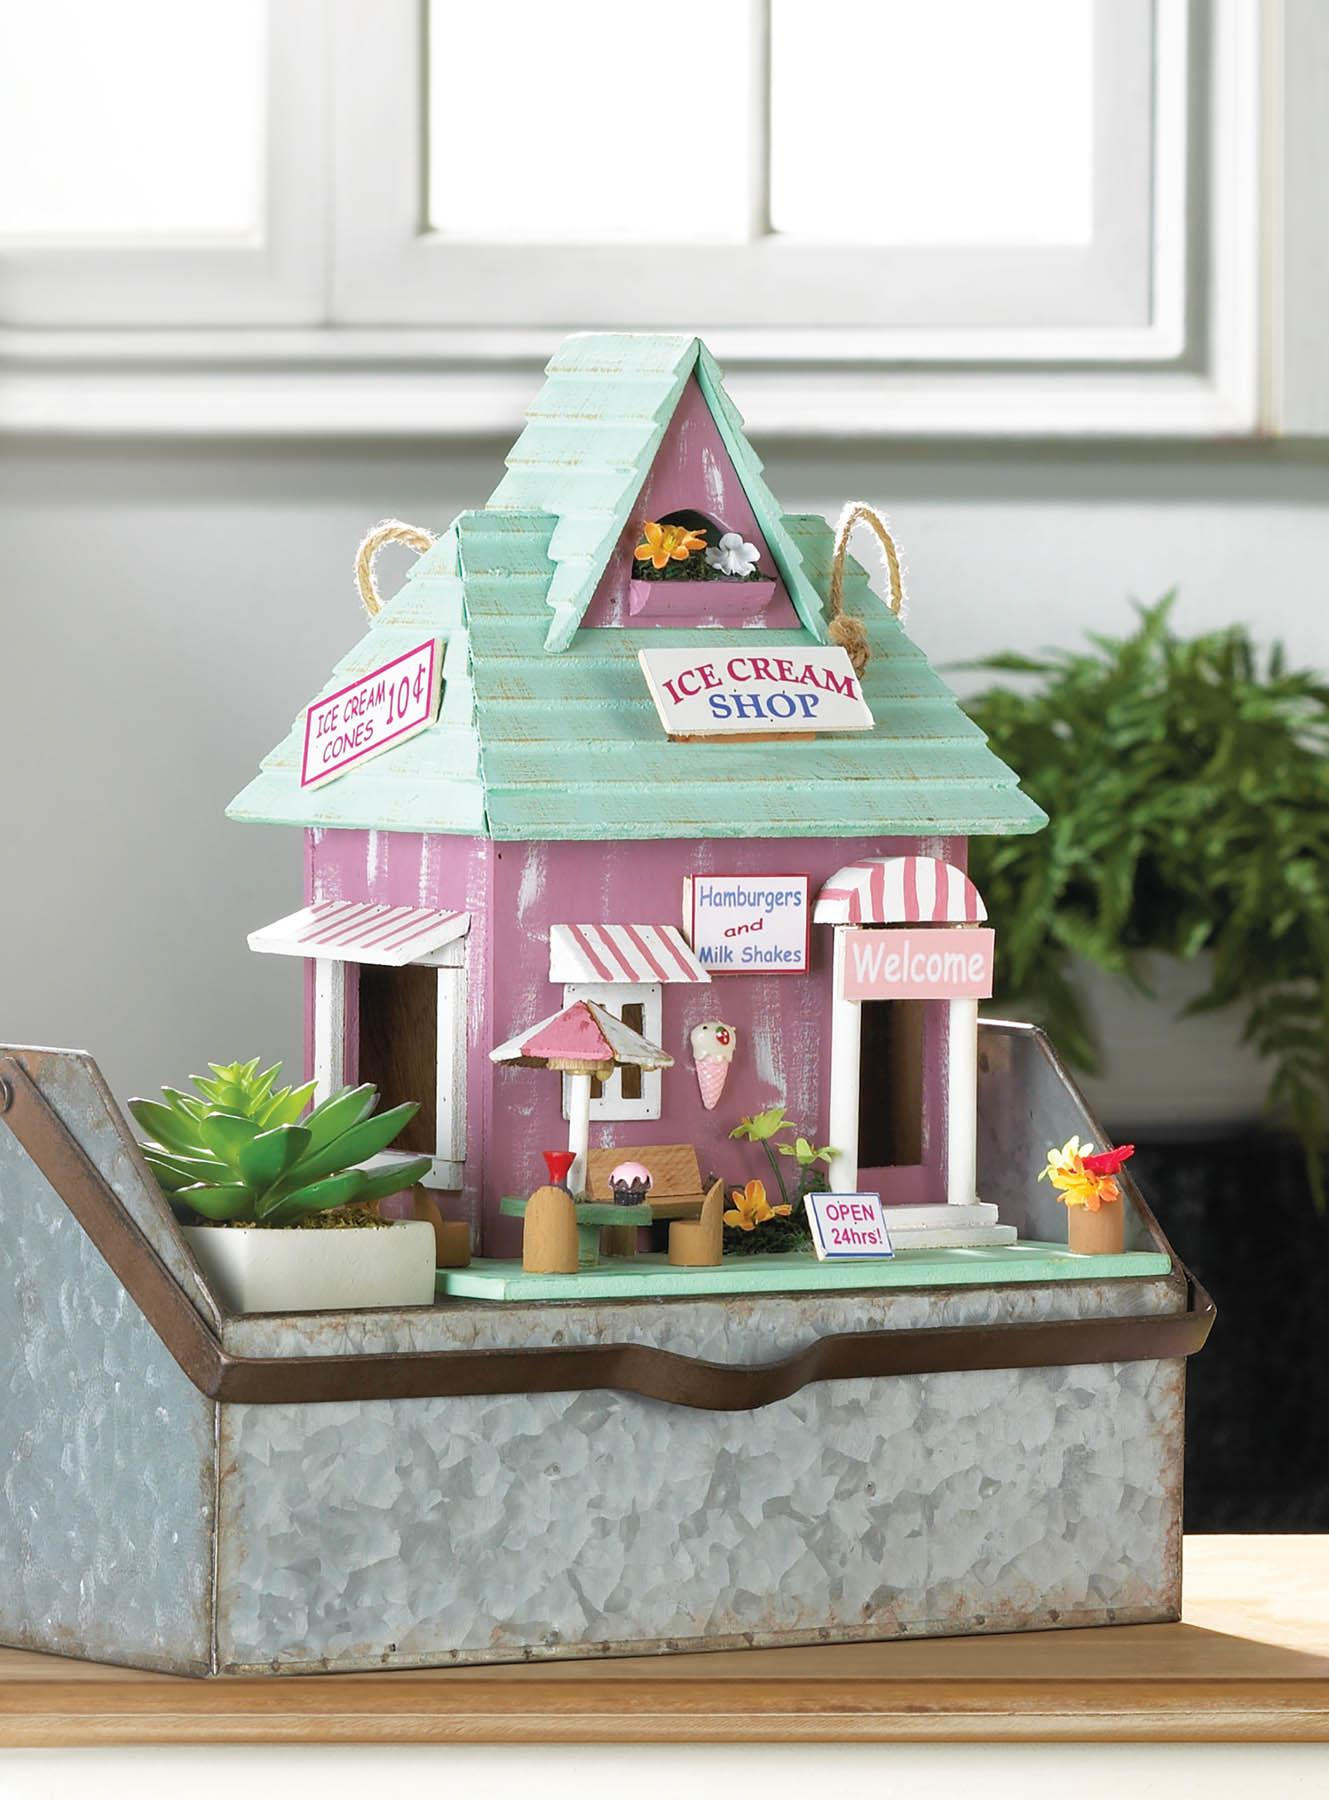 ICE CREAM SHOP BIRDHOUSE 10018683